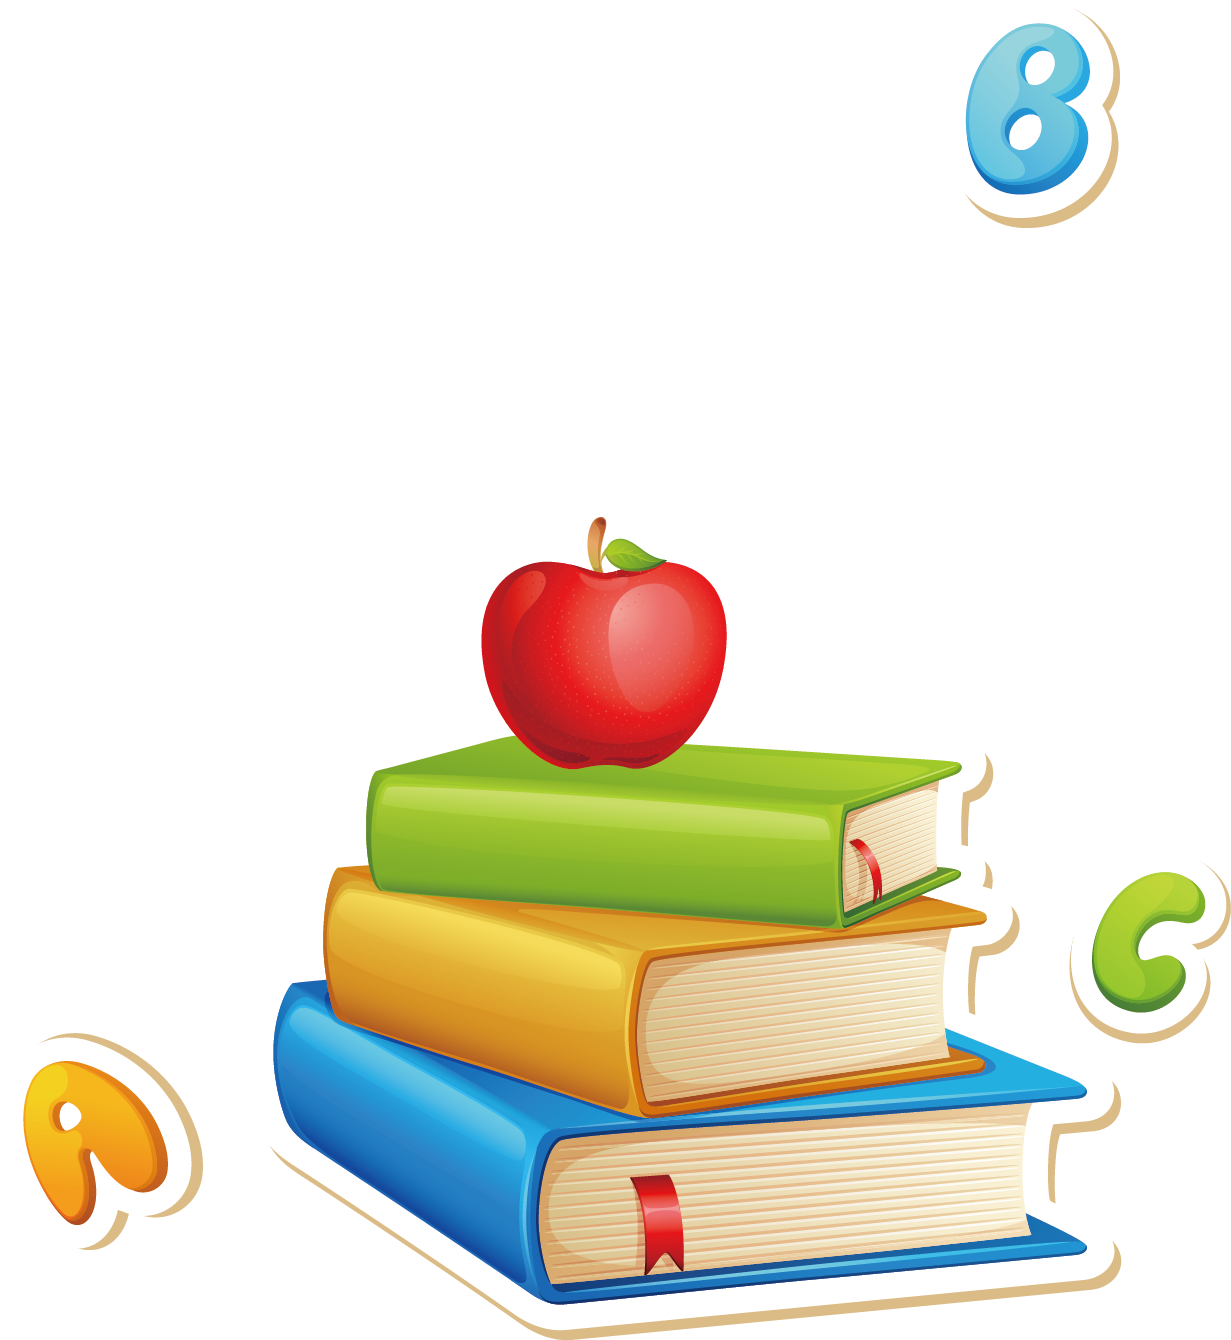 Montessori education early childhood. Textbook clipart educational material